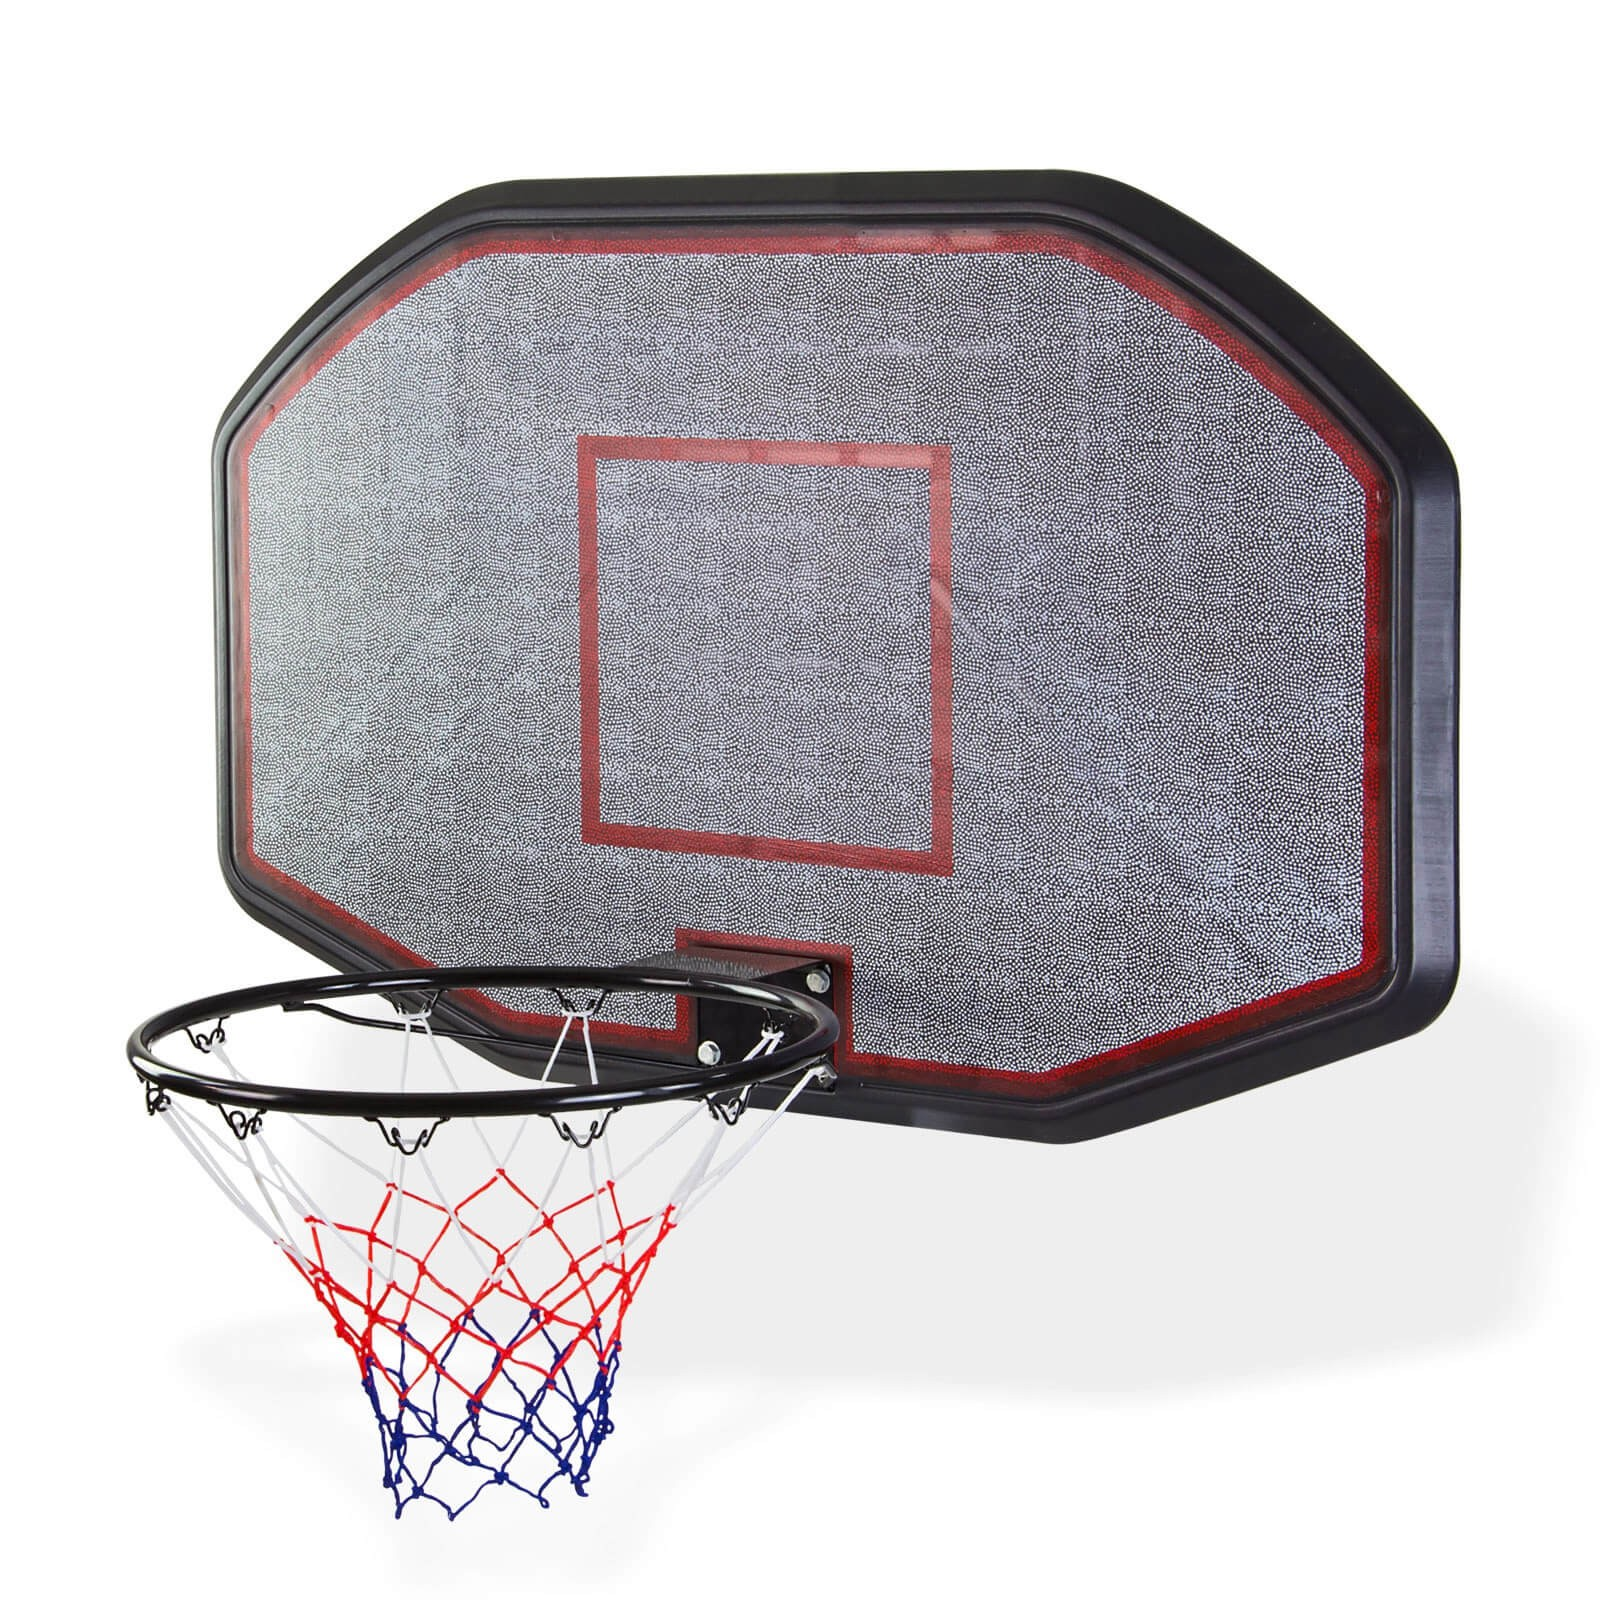 Dema Basketballkorb Basketballbrett Basketballanlage Basketball Korb XXL 70091